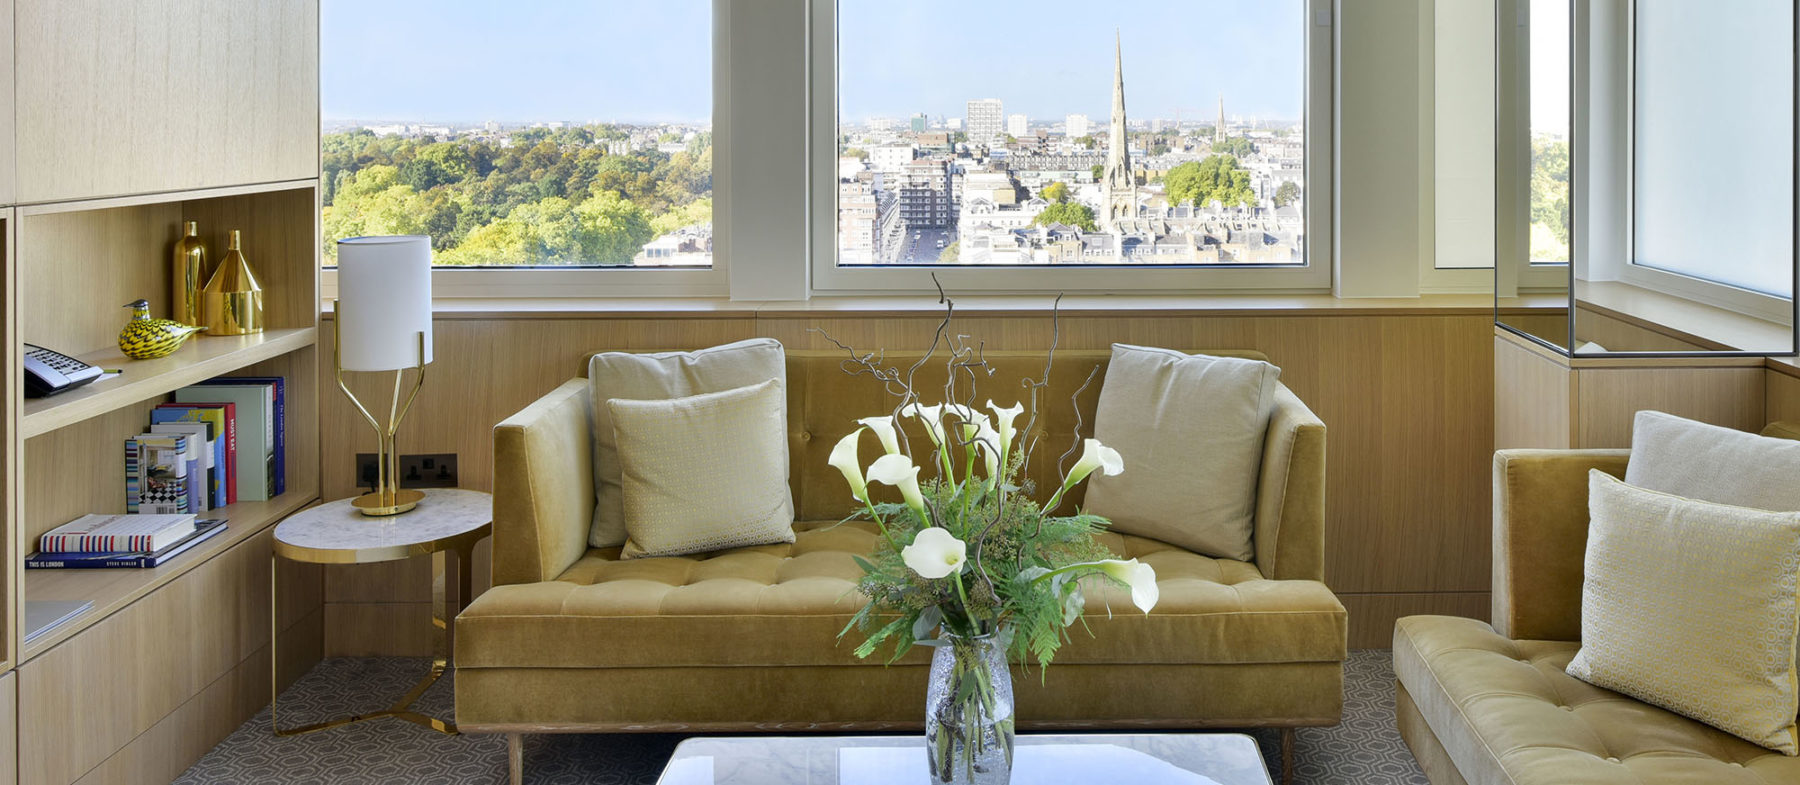 Luxury Suite with a view London